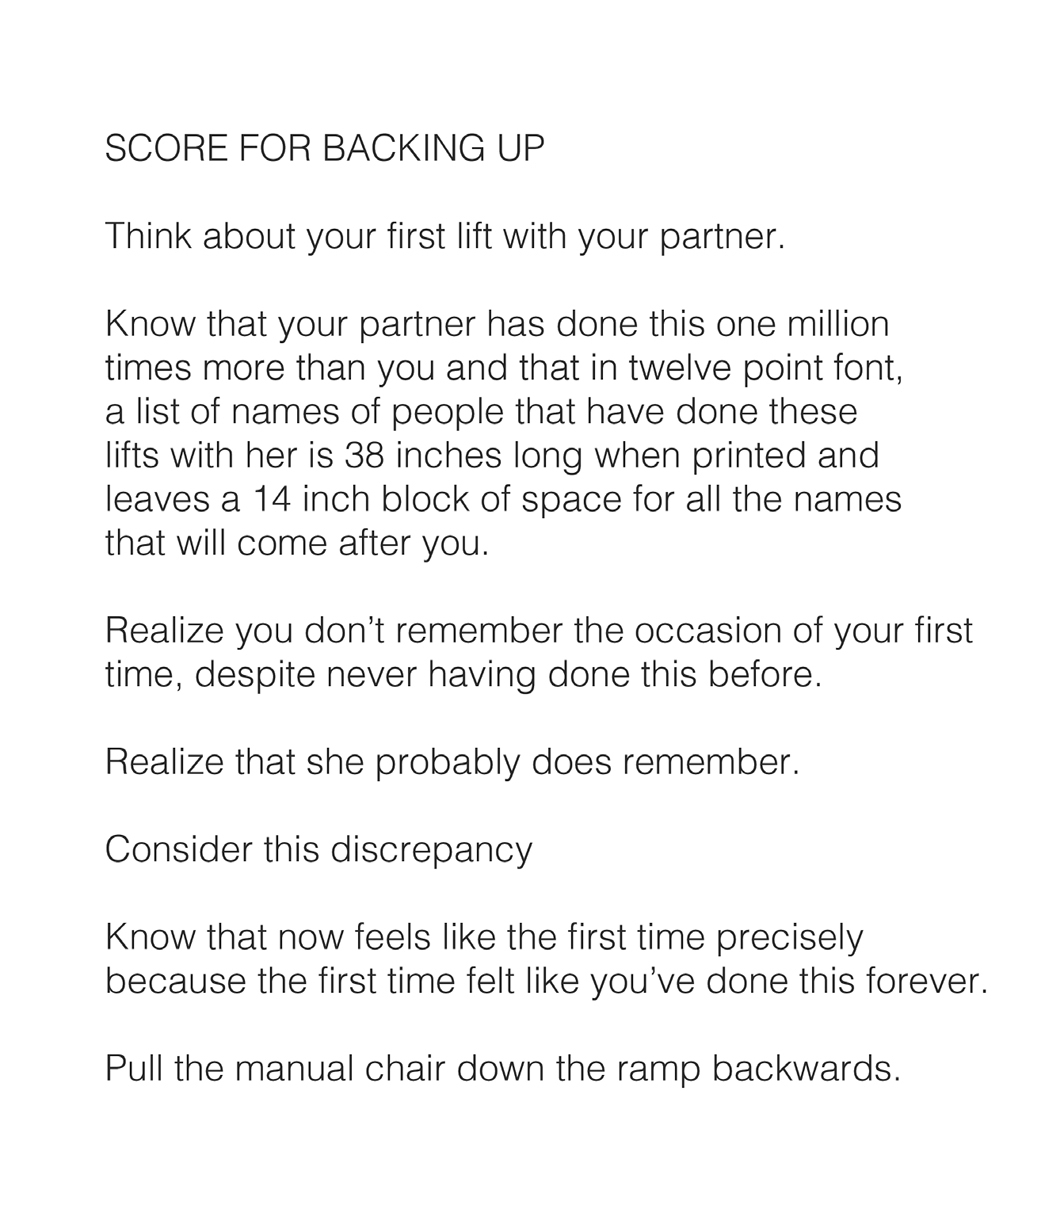 "Park McArthur and Constantina Zavitsanos, Score for Backing Up, 2013, text. [An event score titled SCORE FOR BACKING UP reads as follows:""Think about your first lift with your partner.Know that your partner has done this one million times more than you and that in 